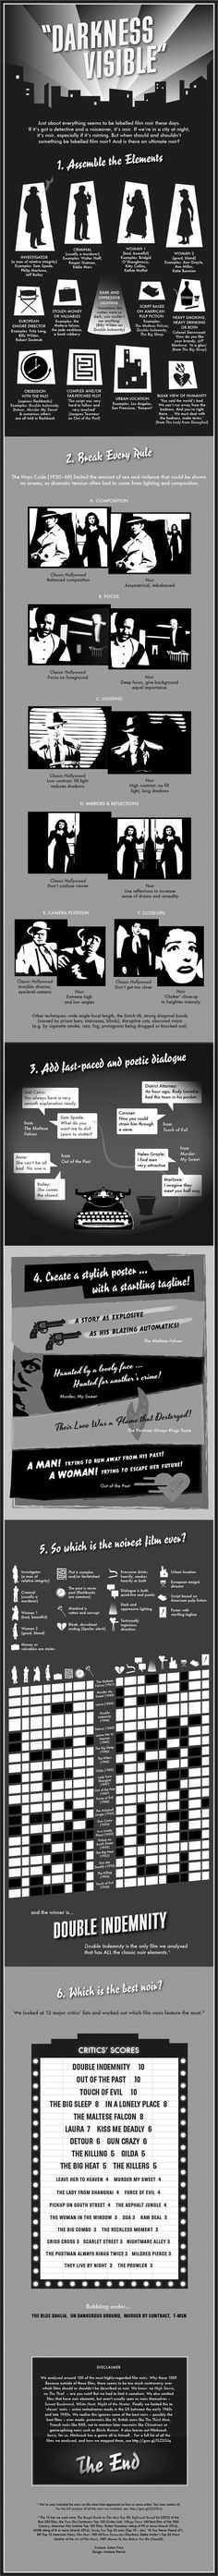 Film Noir - an infographic dedicated to the shadowy world of one of classic Hollywood's most beloved subgenres. (BFI)